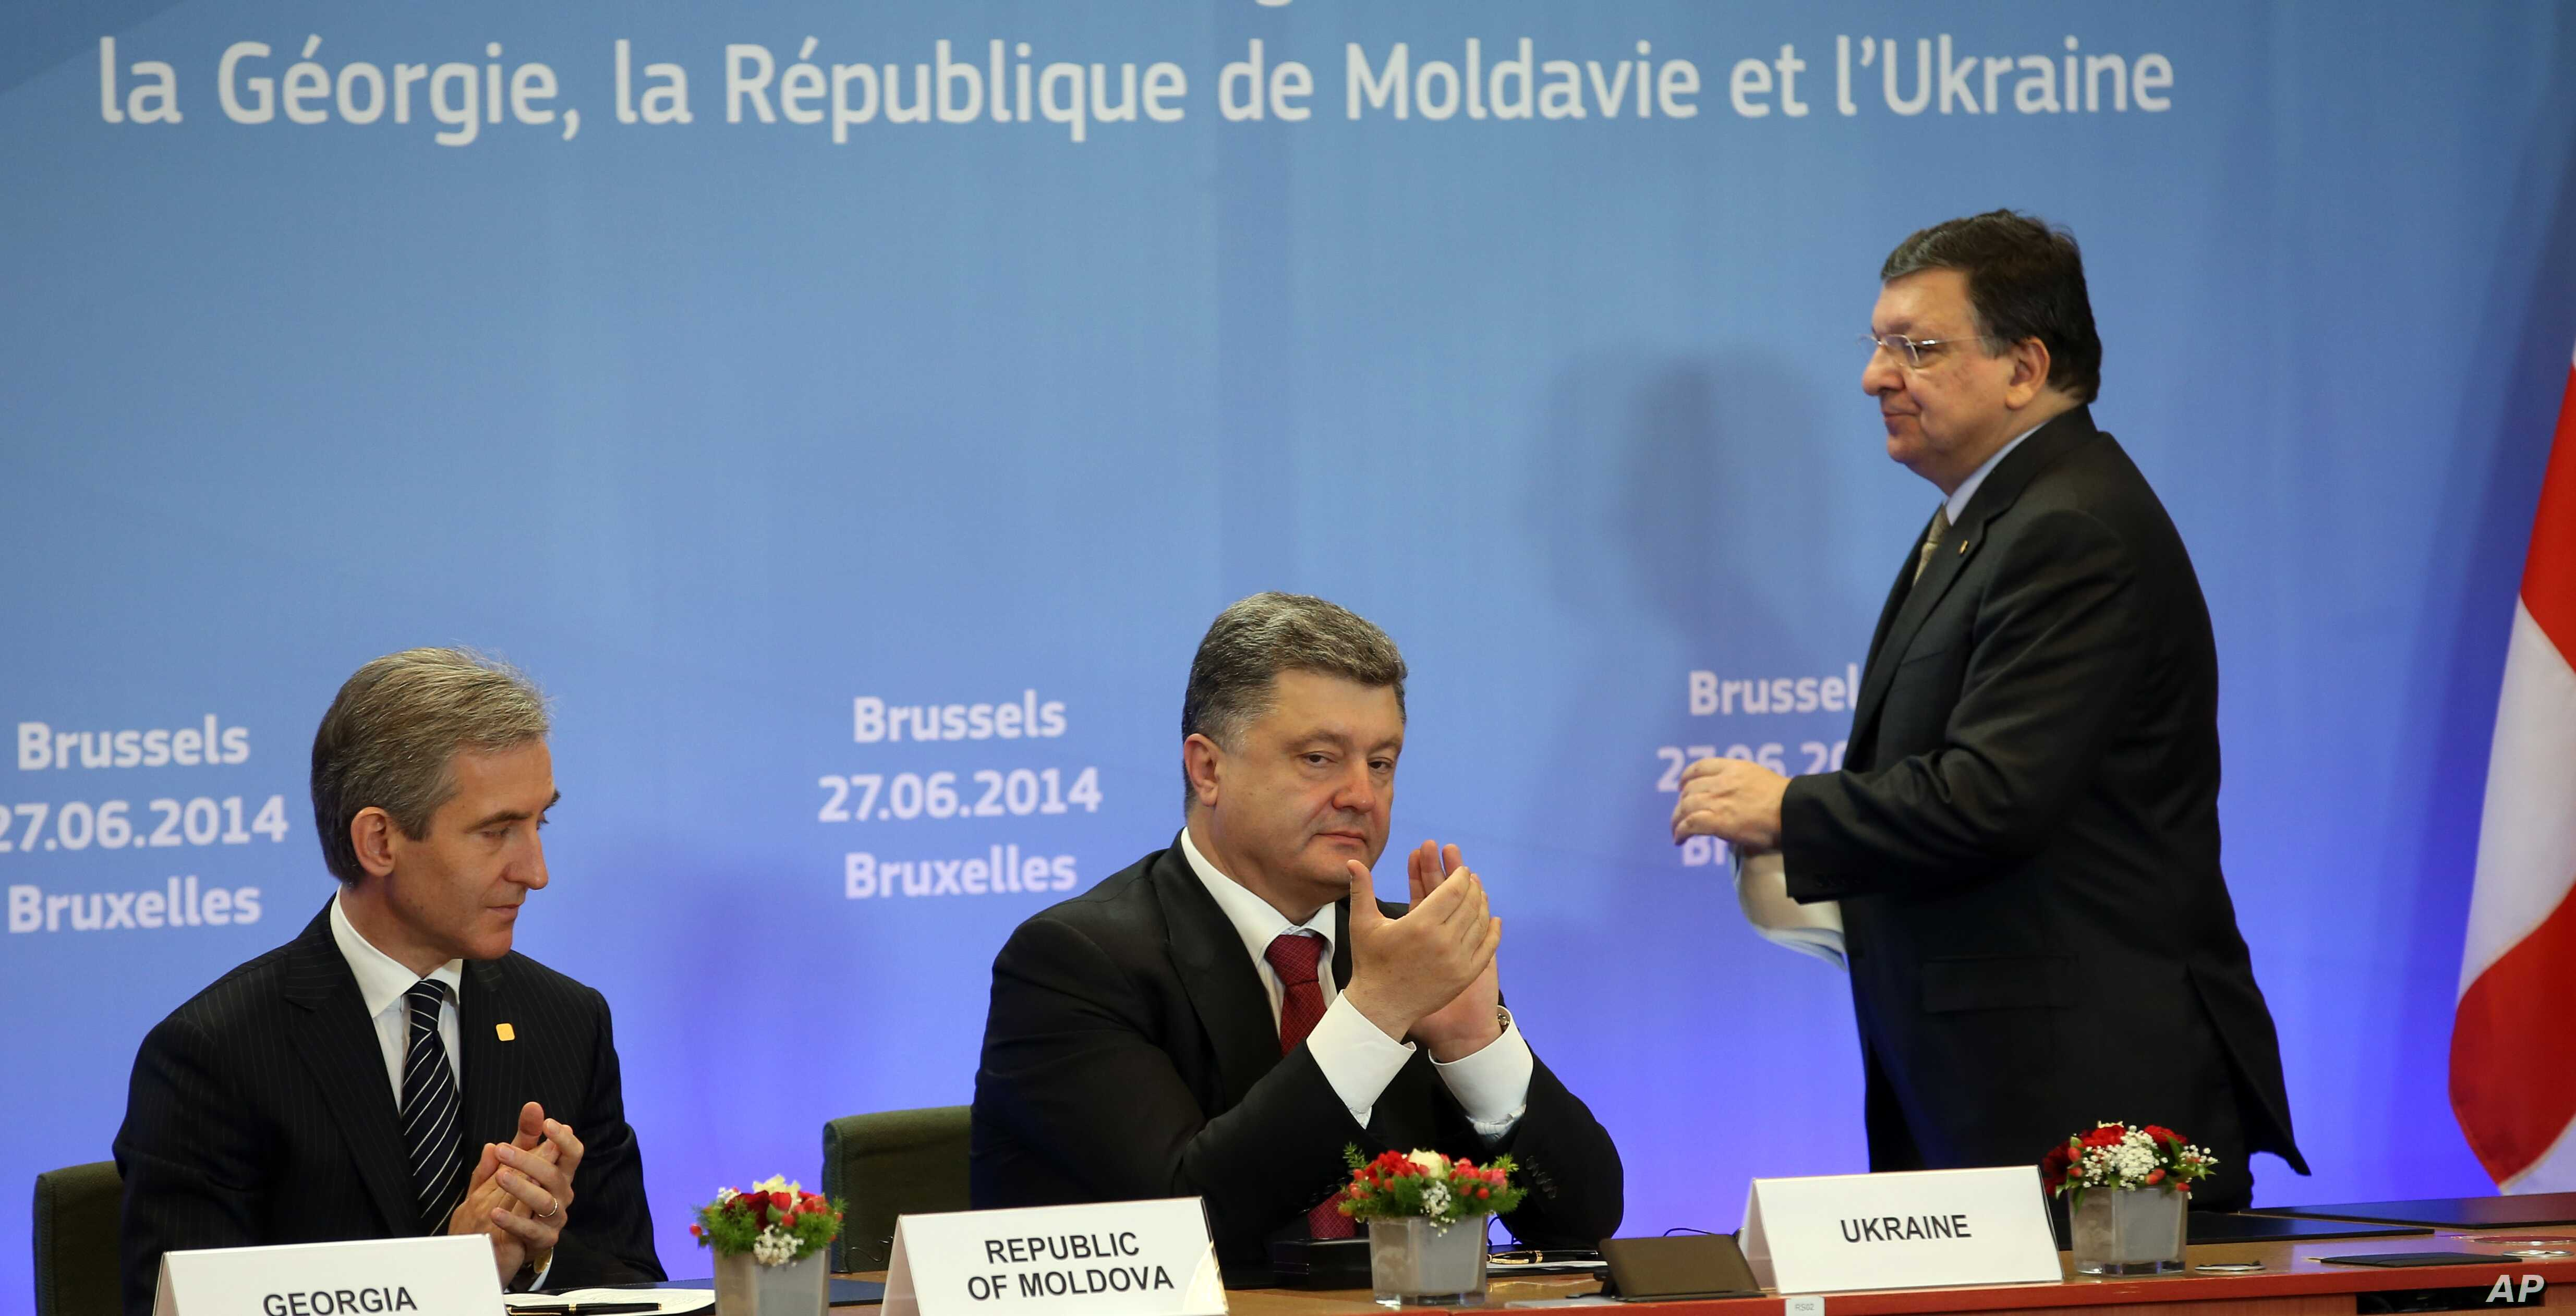 From left, Moldova's Prime Minister Lurie Leanca, Ukrainian President Petro Poroshenko and European Commission President Jose Manuel Barroso participate in a signing ceremony at an EU summit in Brussels on Friday, June 27, 2014.